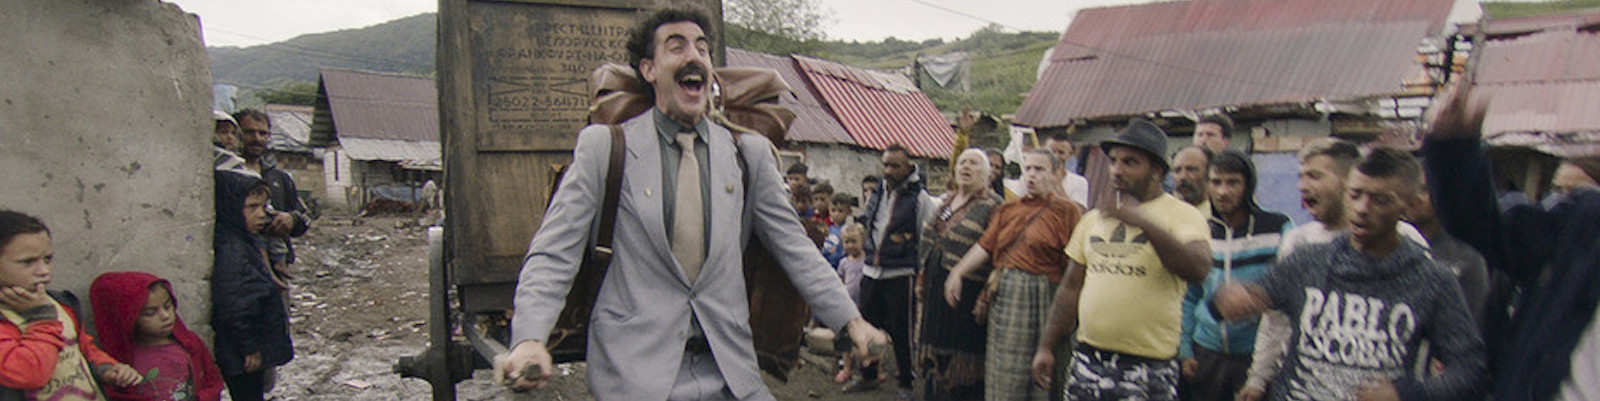 'Borat 2' Review: Times Change, Politics Change, But Raising Hell Does Not